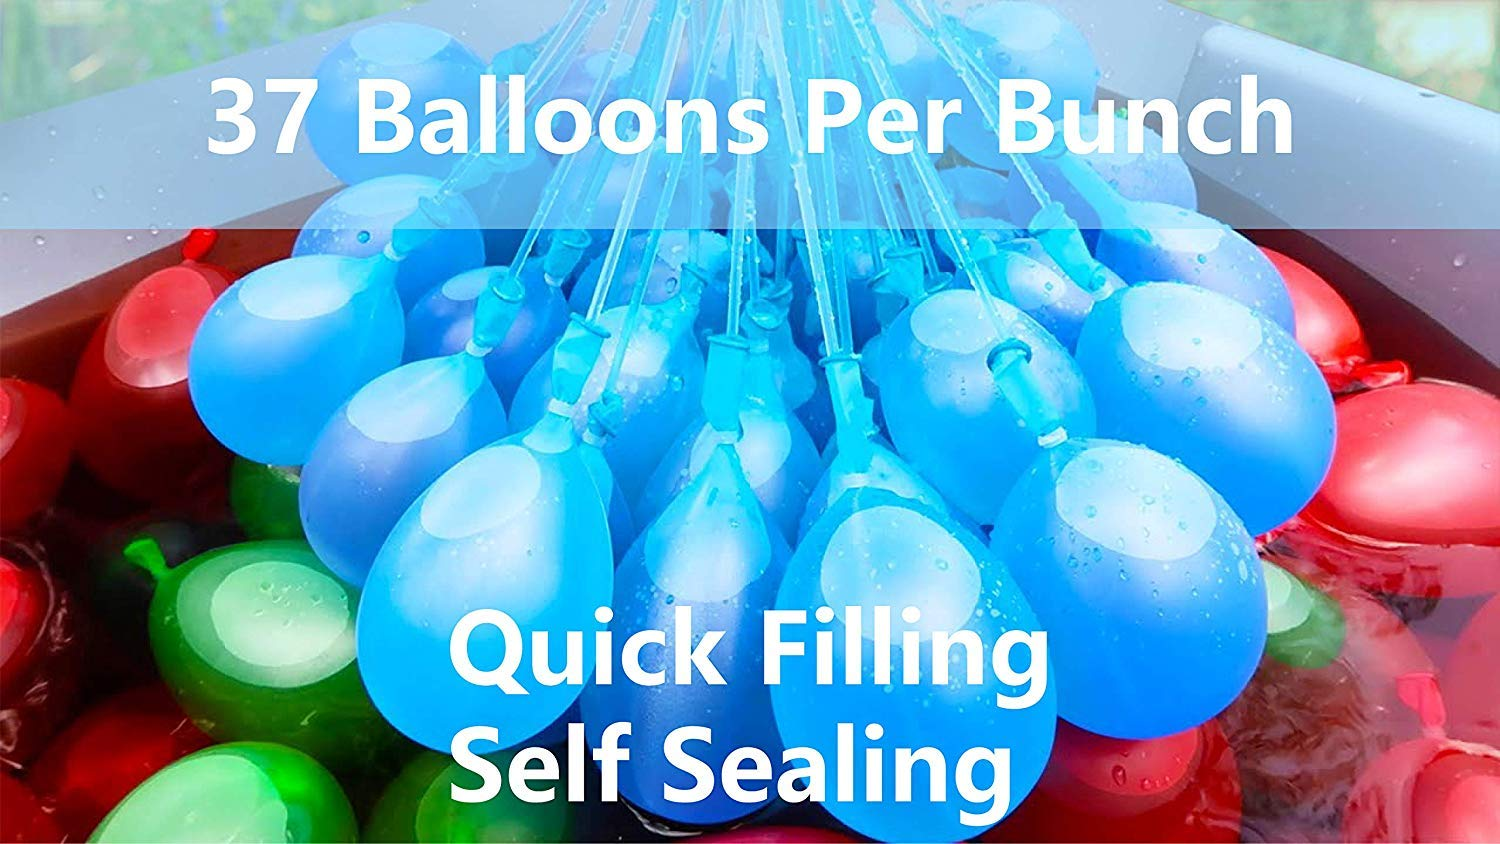 Water Balloons for Kids Girls Boys Balloons Set Party Games Quick Fill Water Balloons 555 Bunches Swimming Pool Outdoor Summer Fun V46